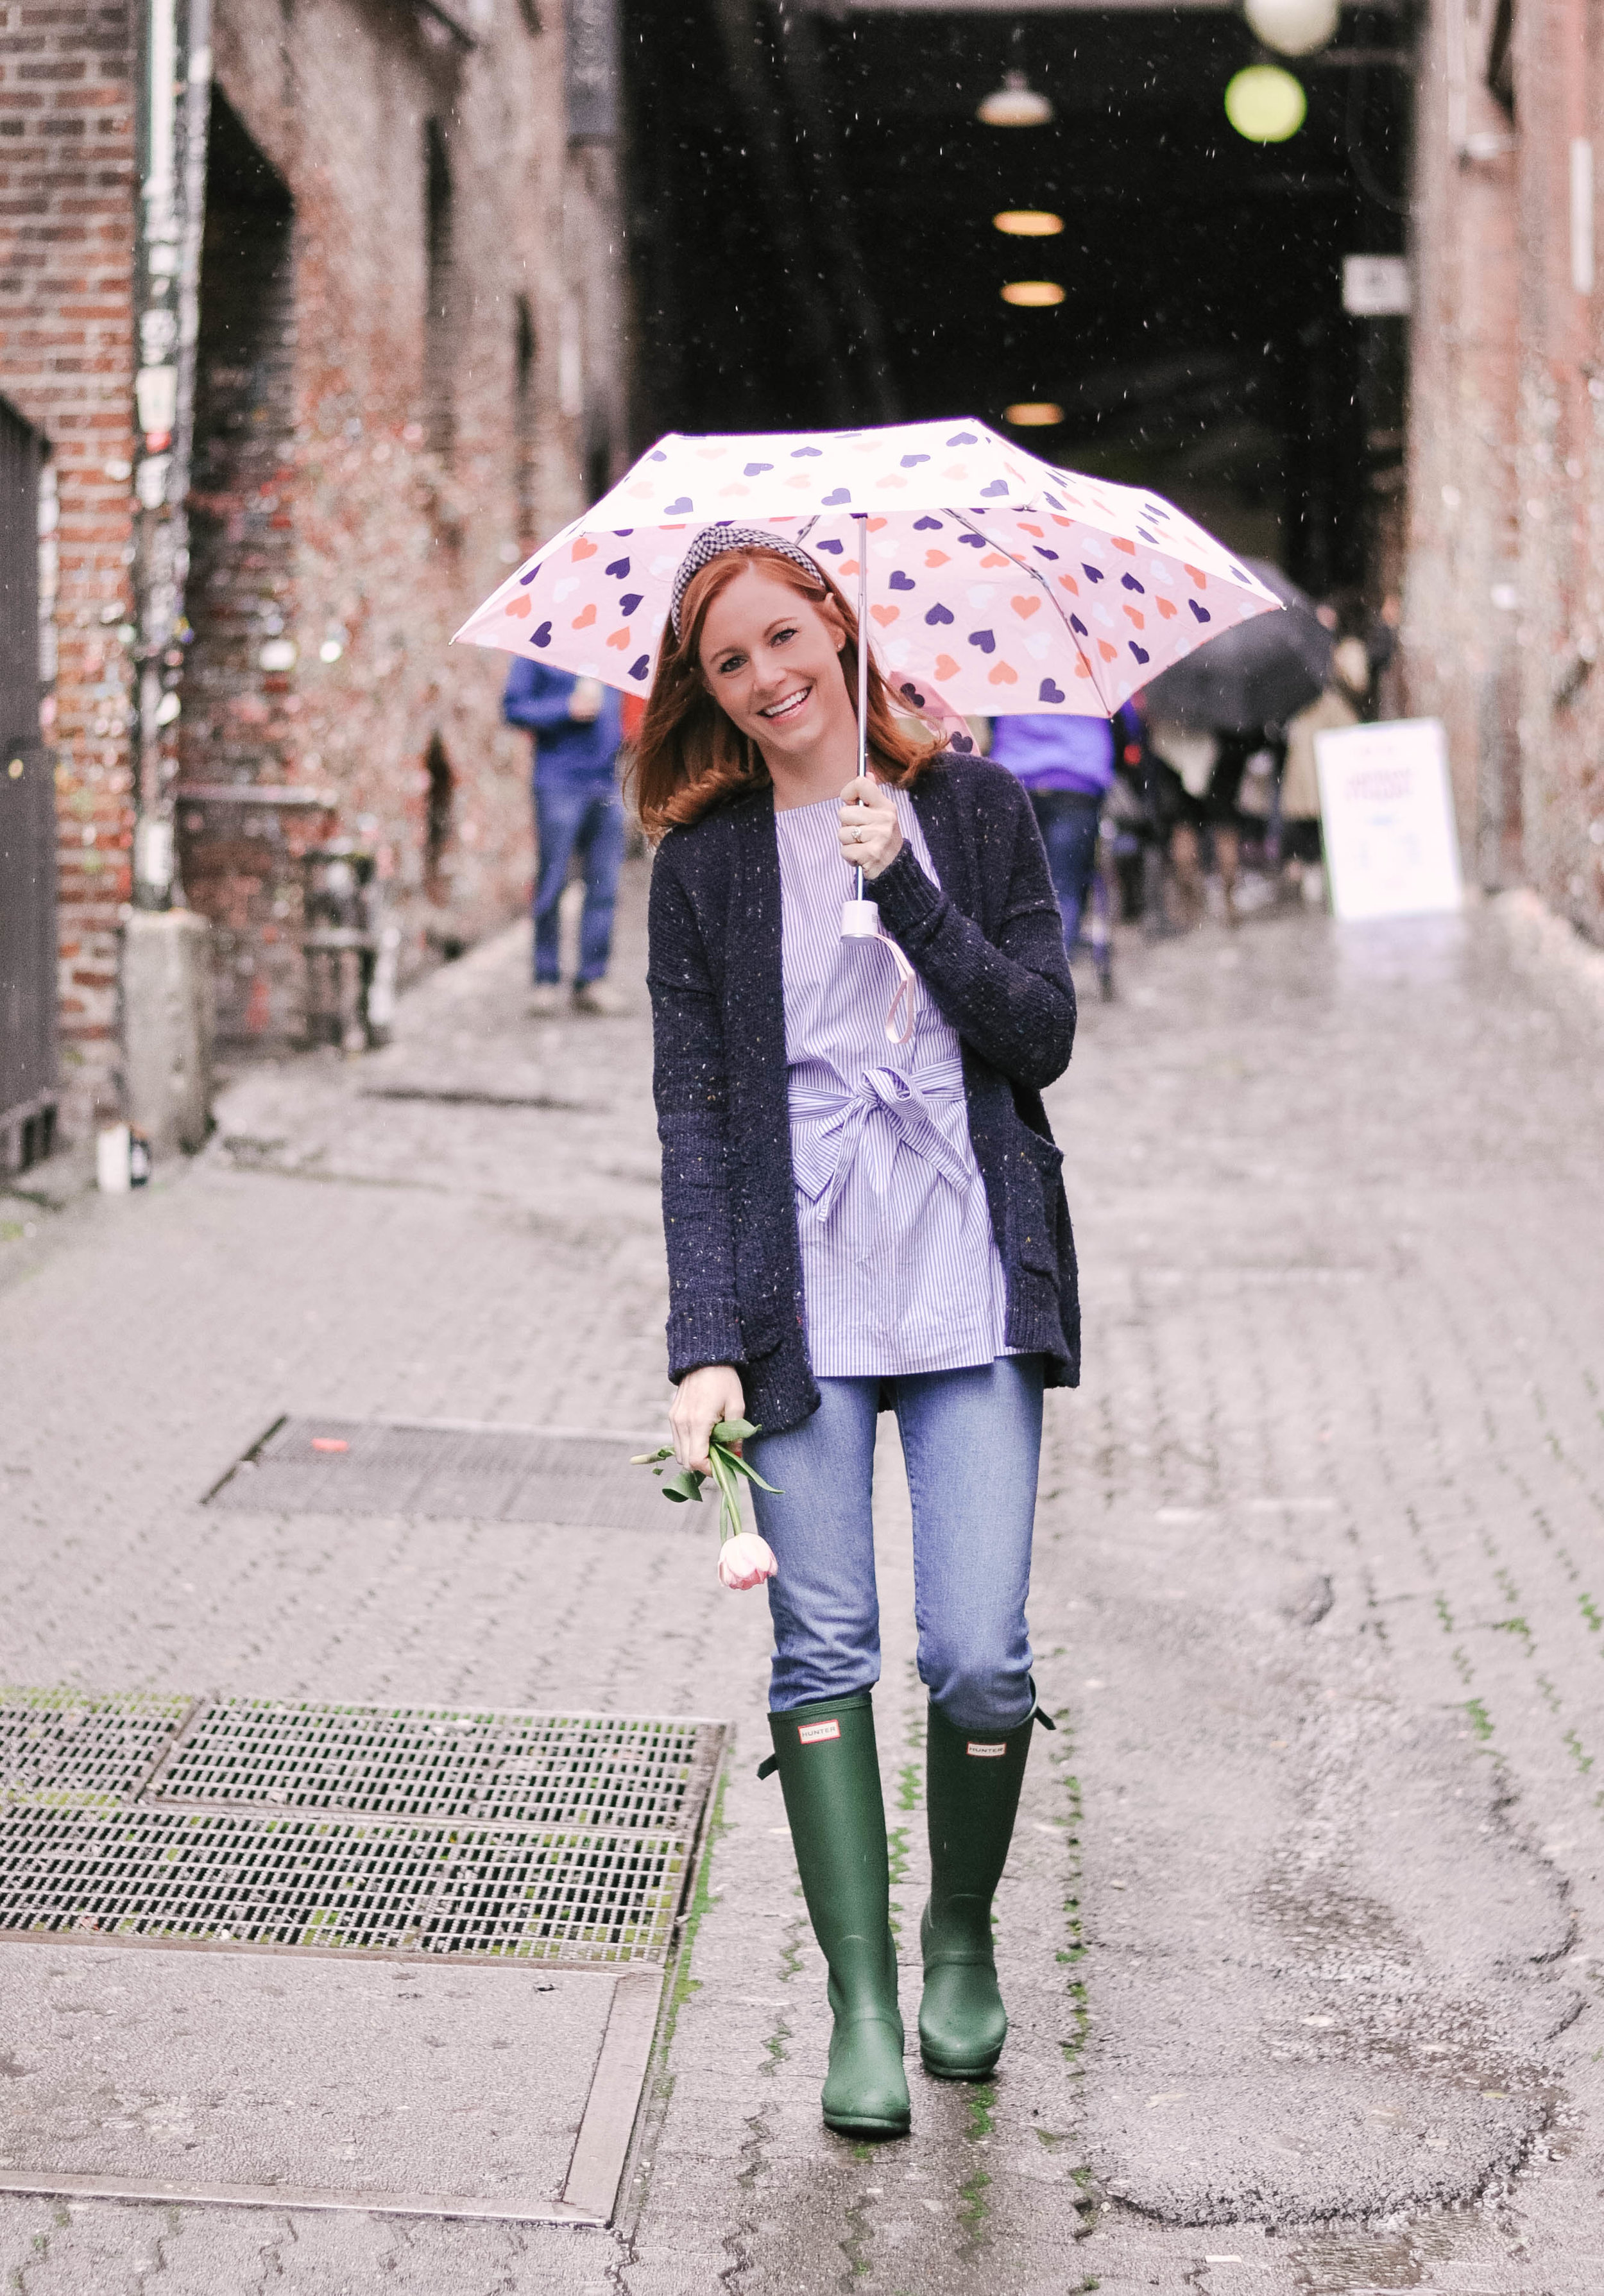 Woman on rainy day with umbrella and boots